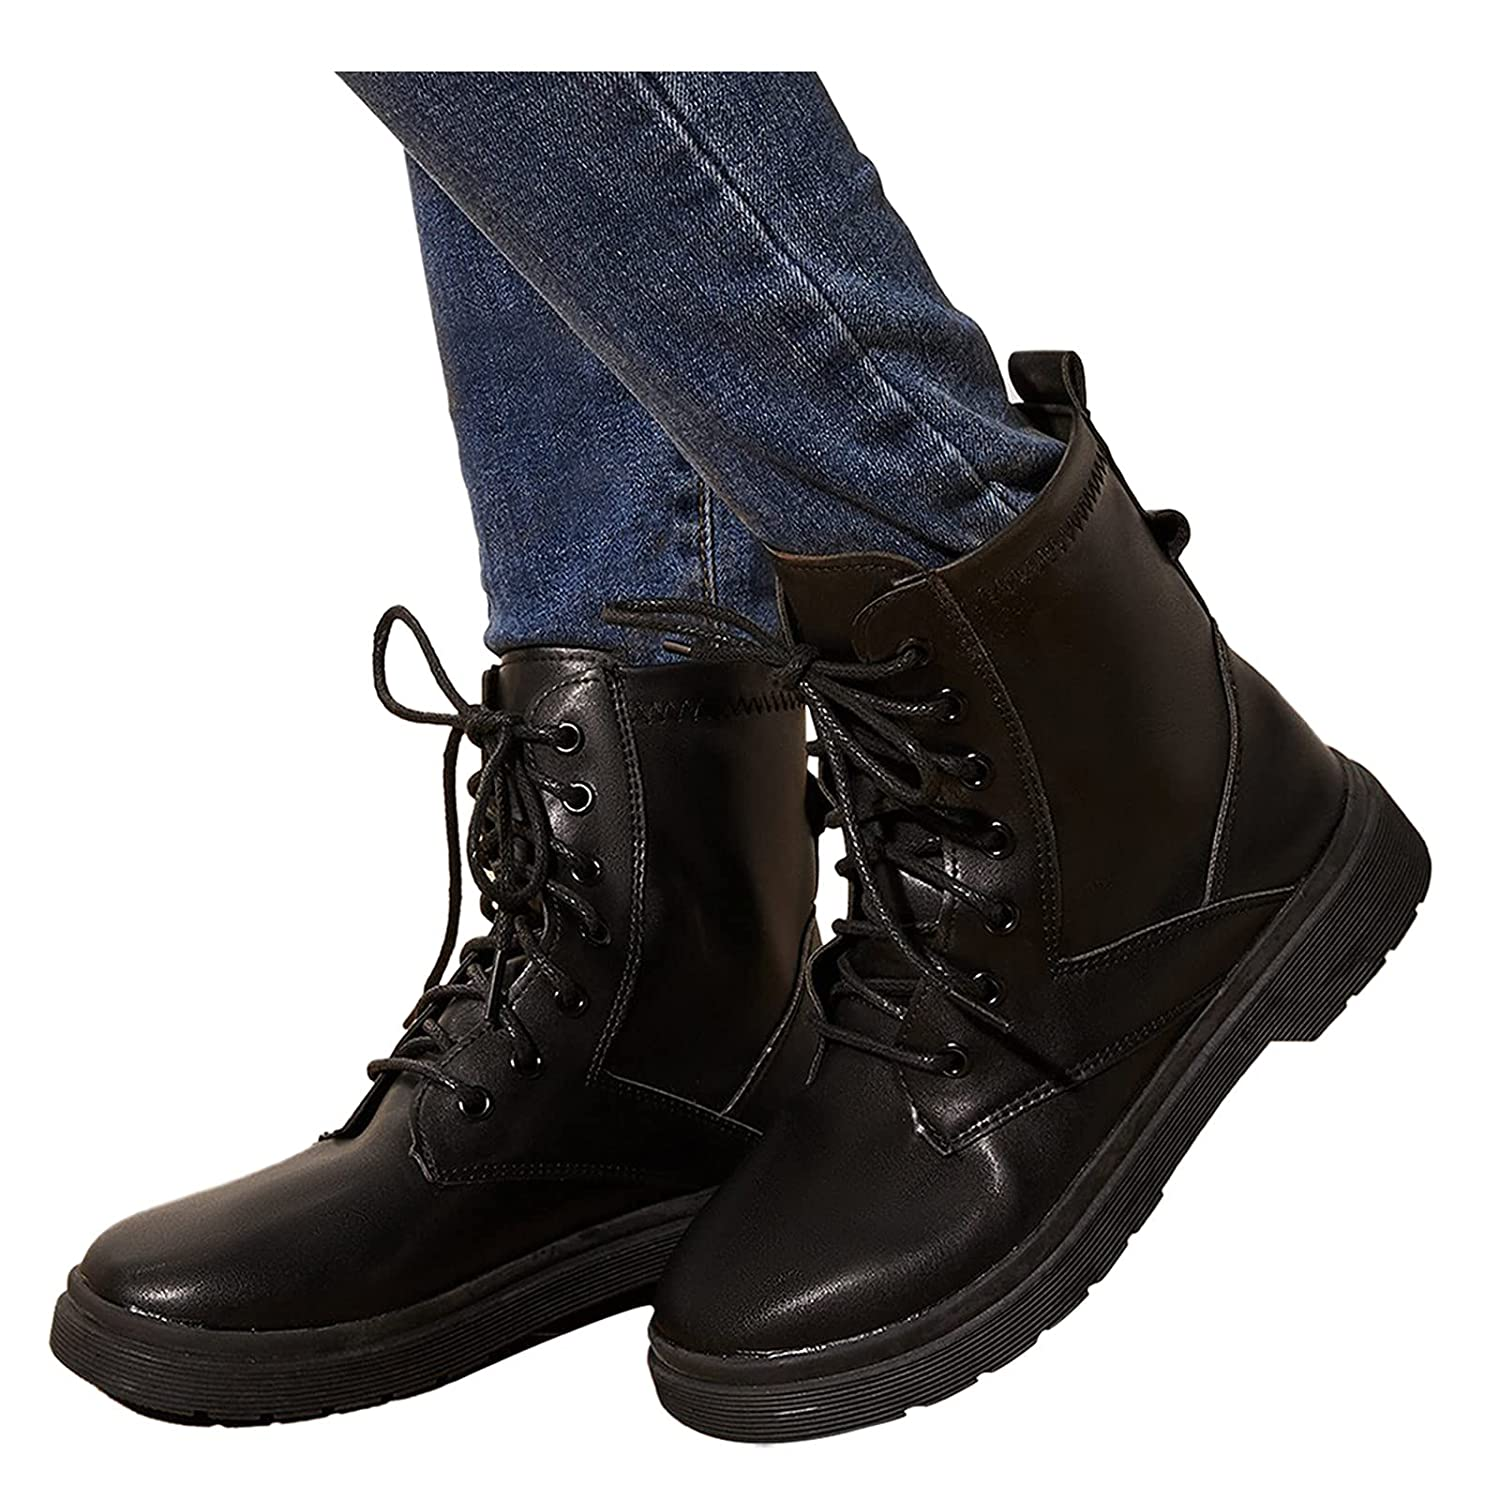 Long-awaited Padaleks Women's High Waterproof Lace Wo Fashion Boot up Leather Easy-to-use